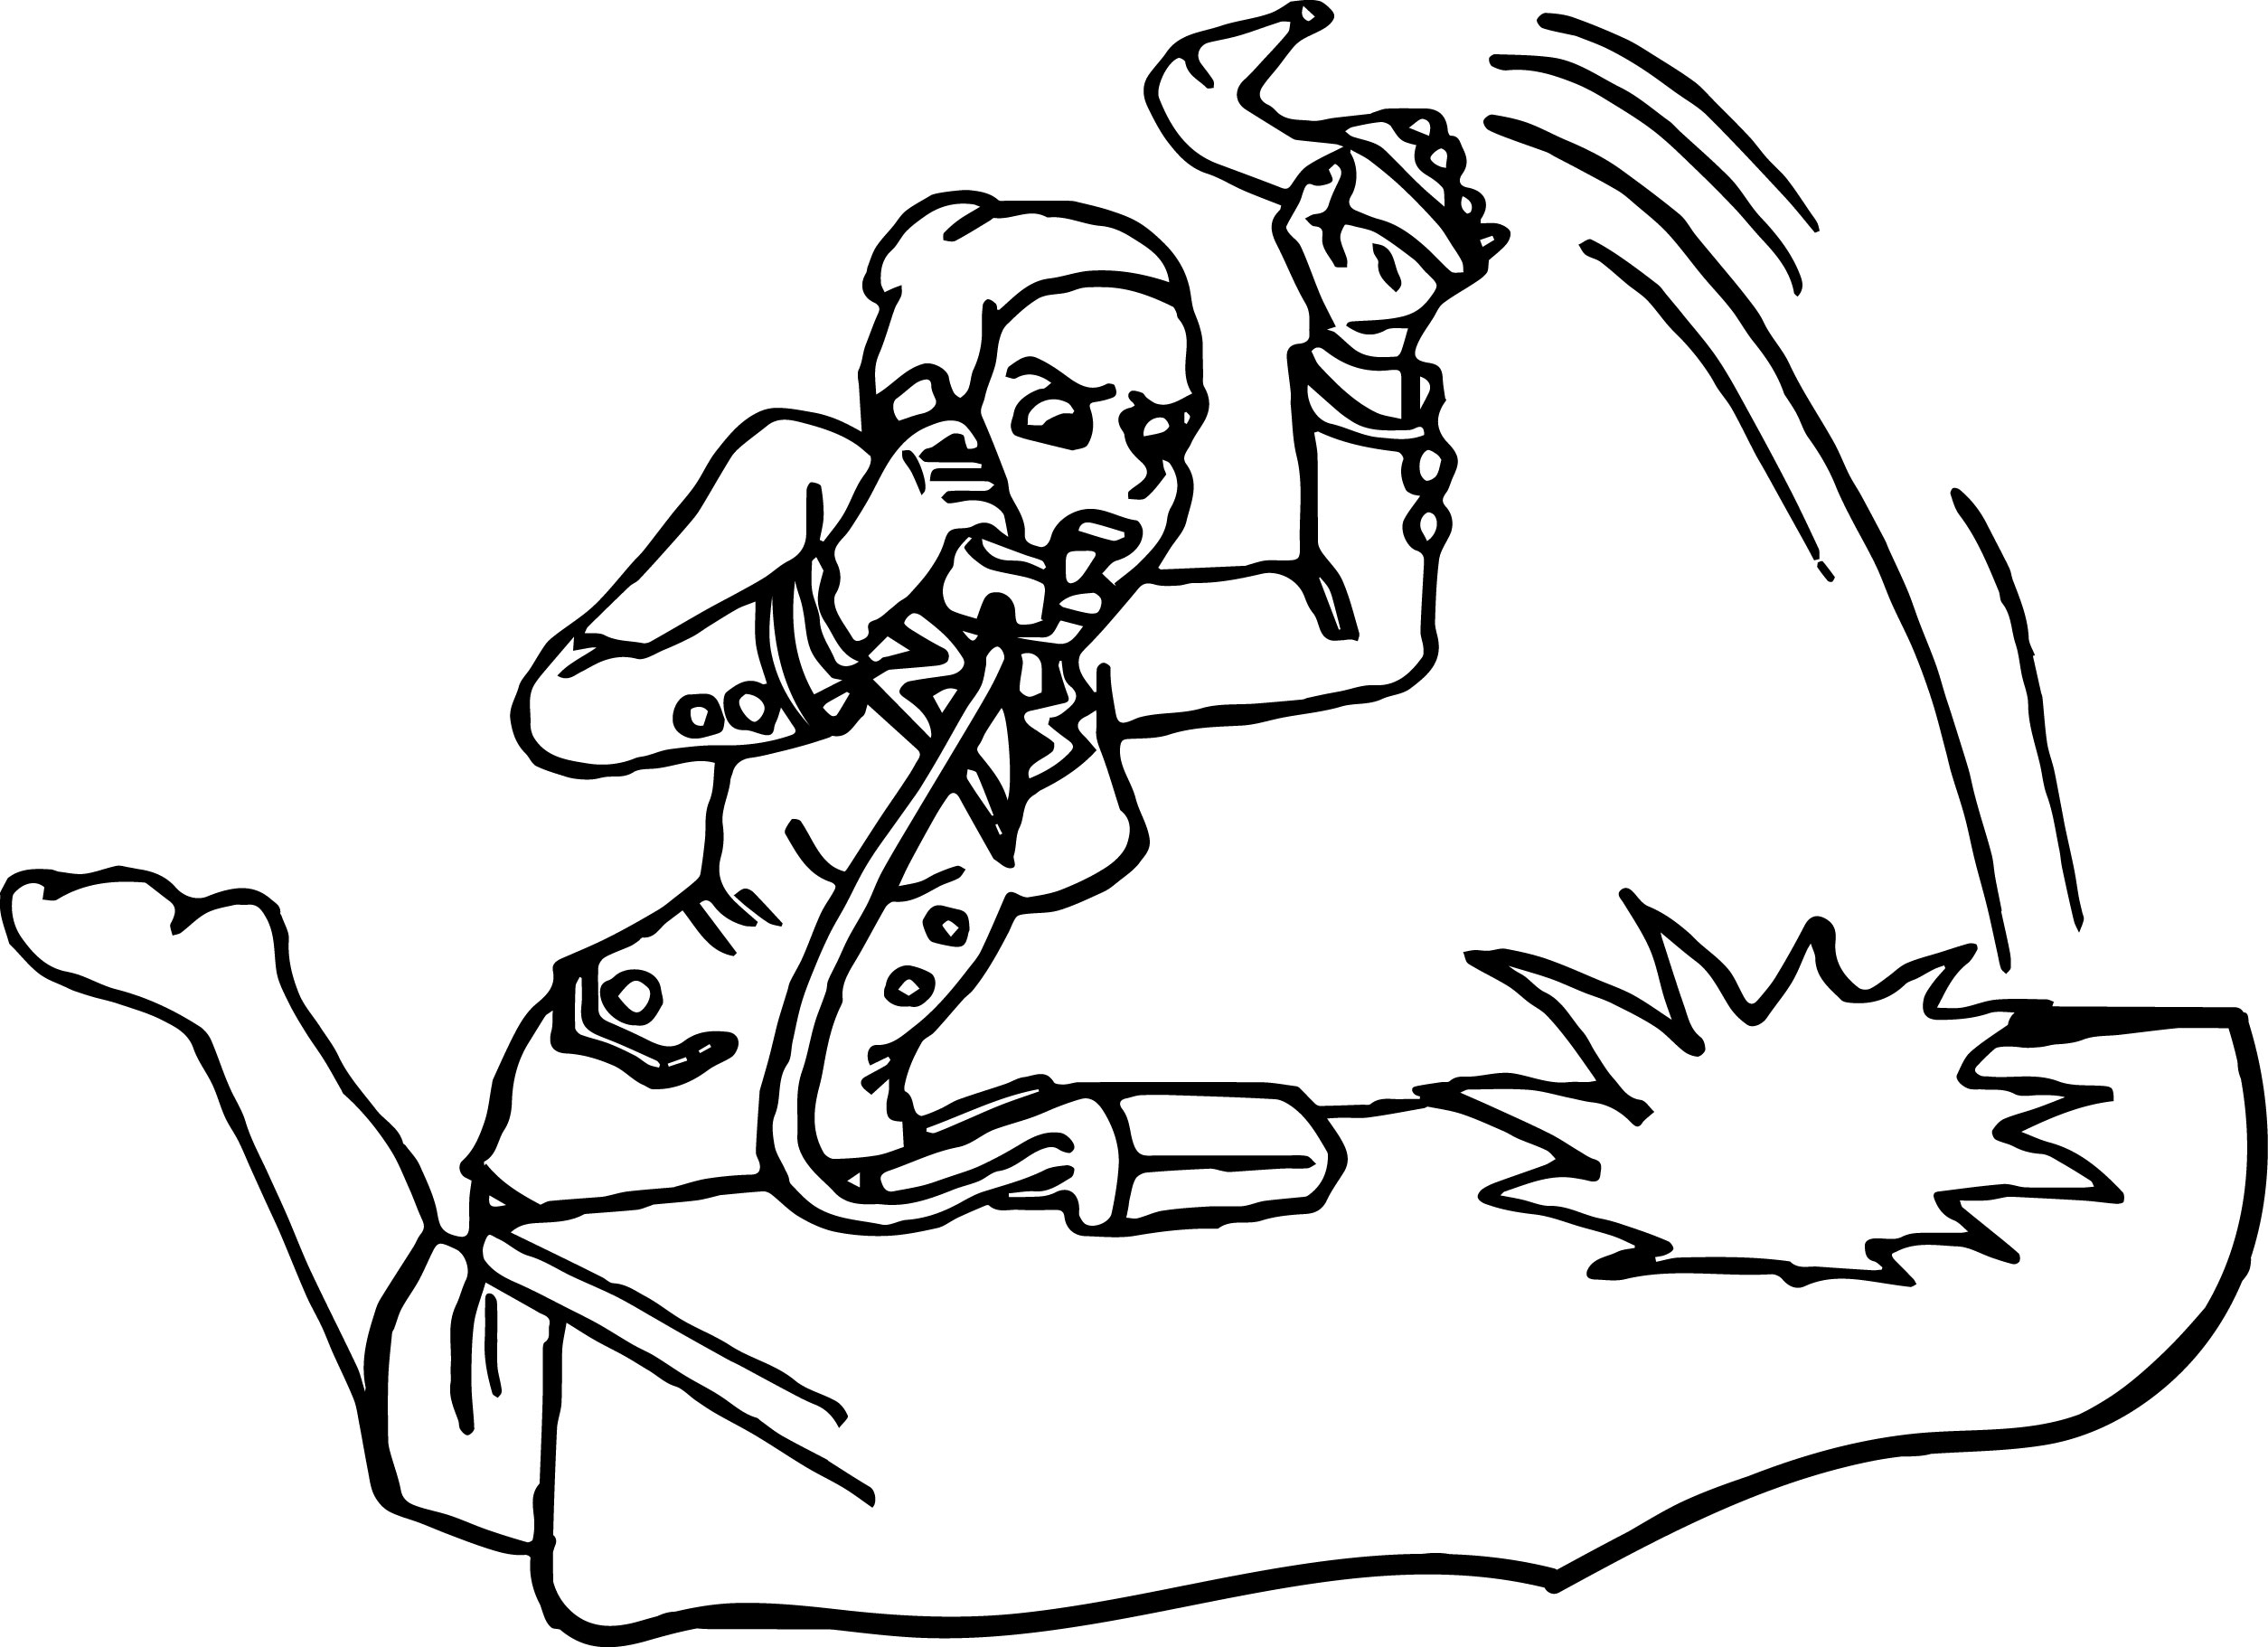 Business Woman Angry Talking Telephone Woman Coloring Page